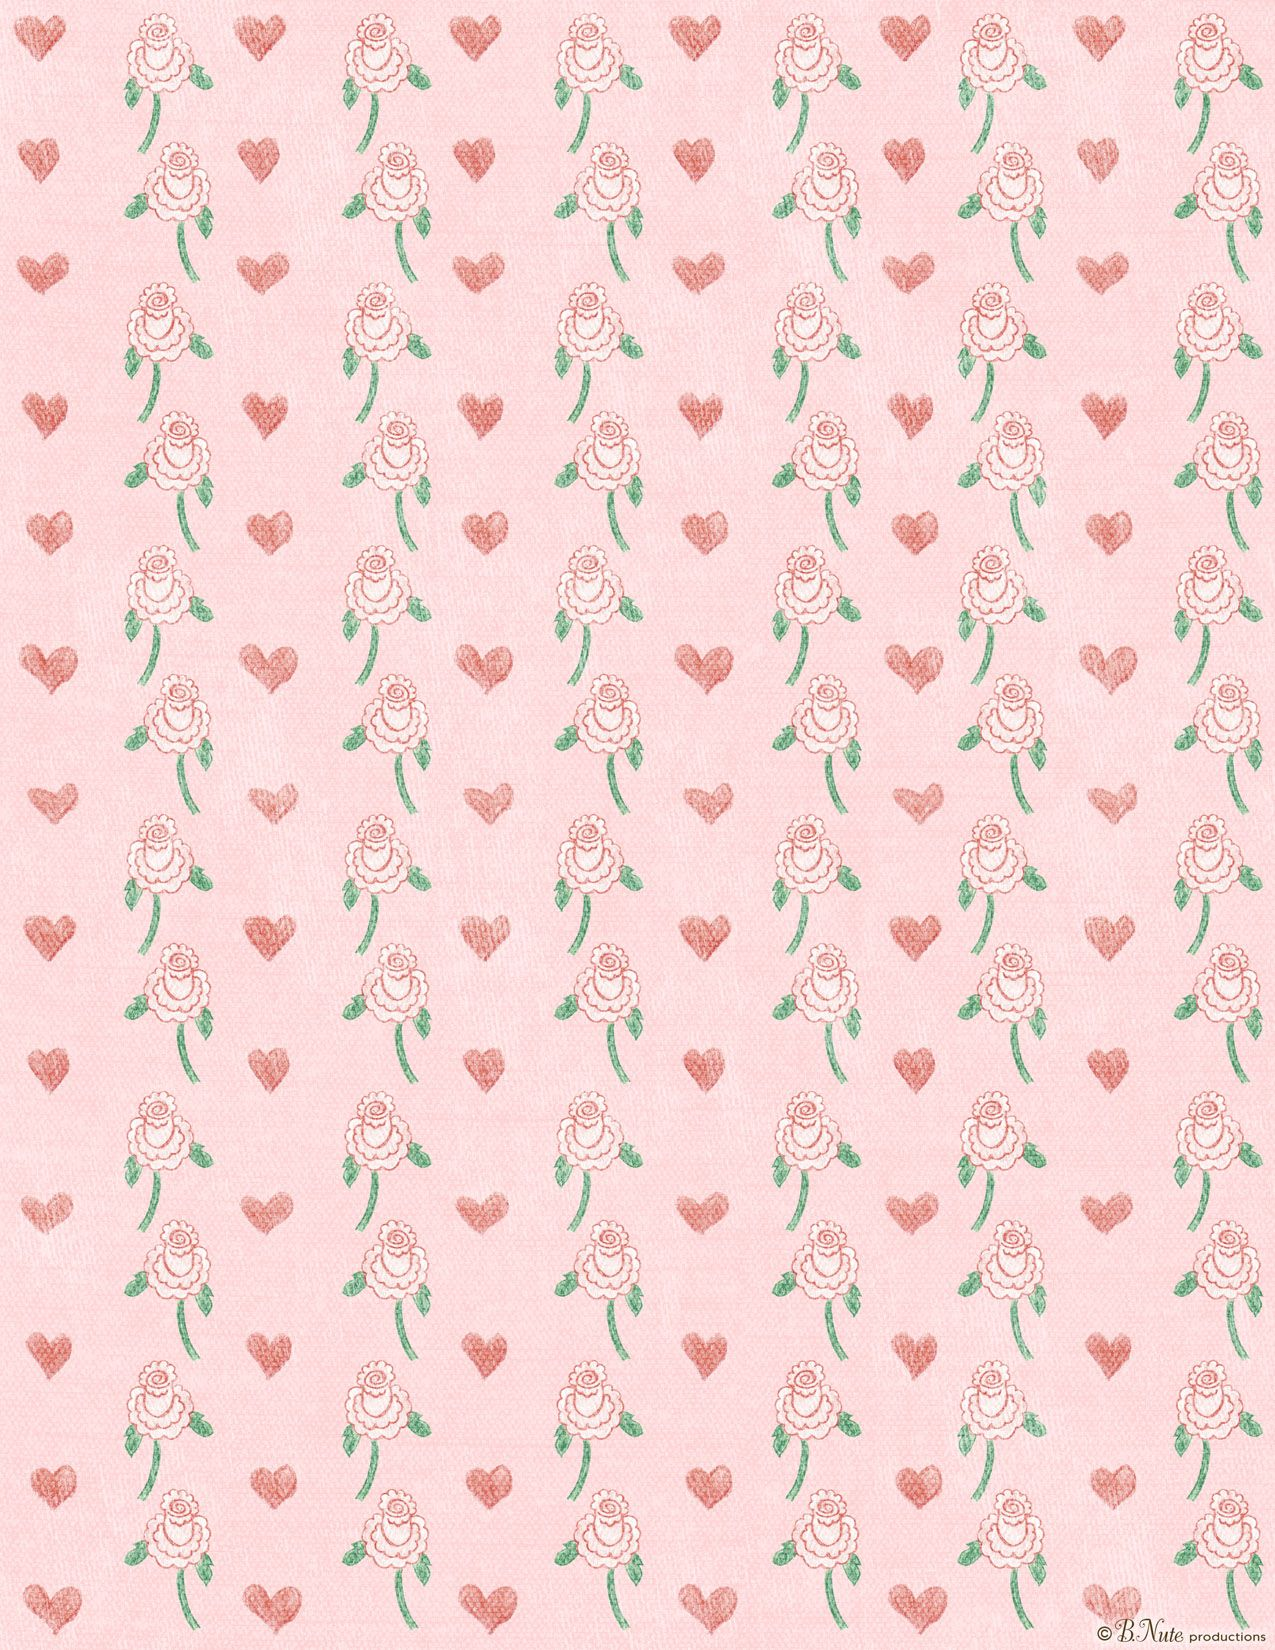 free printable hearts 'n flowers valentines craft paper by b.nute